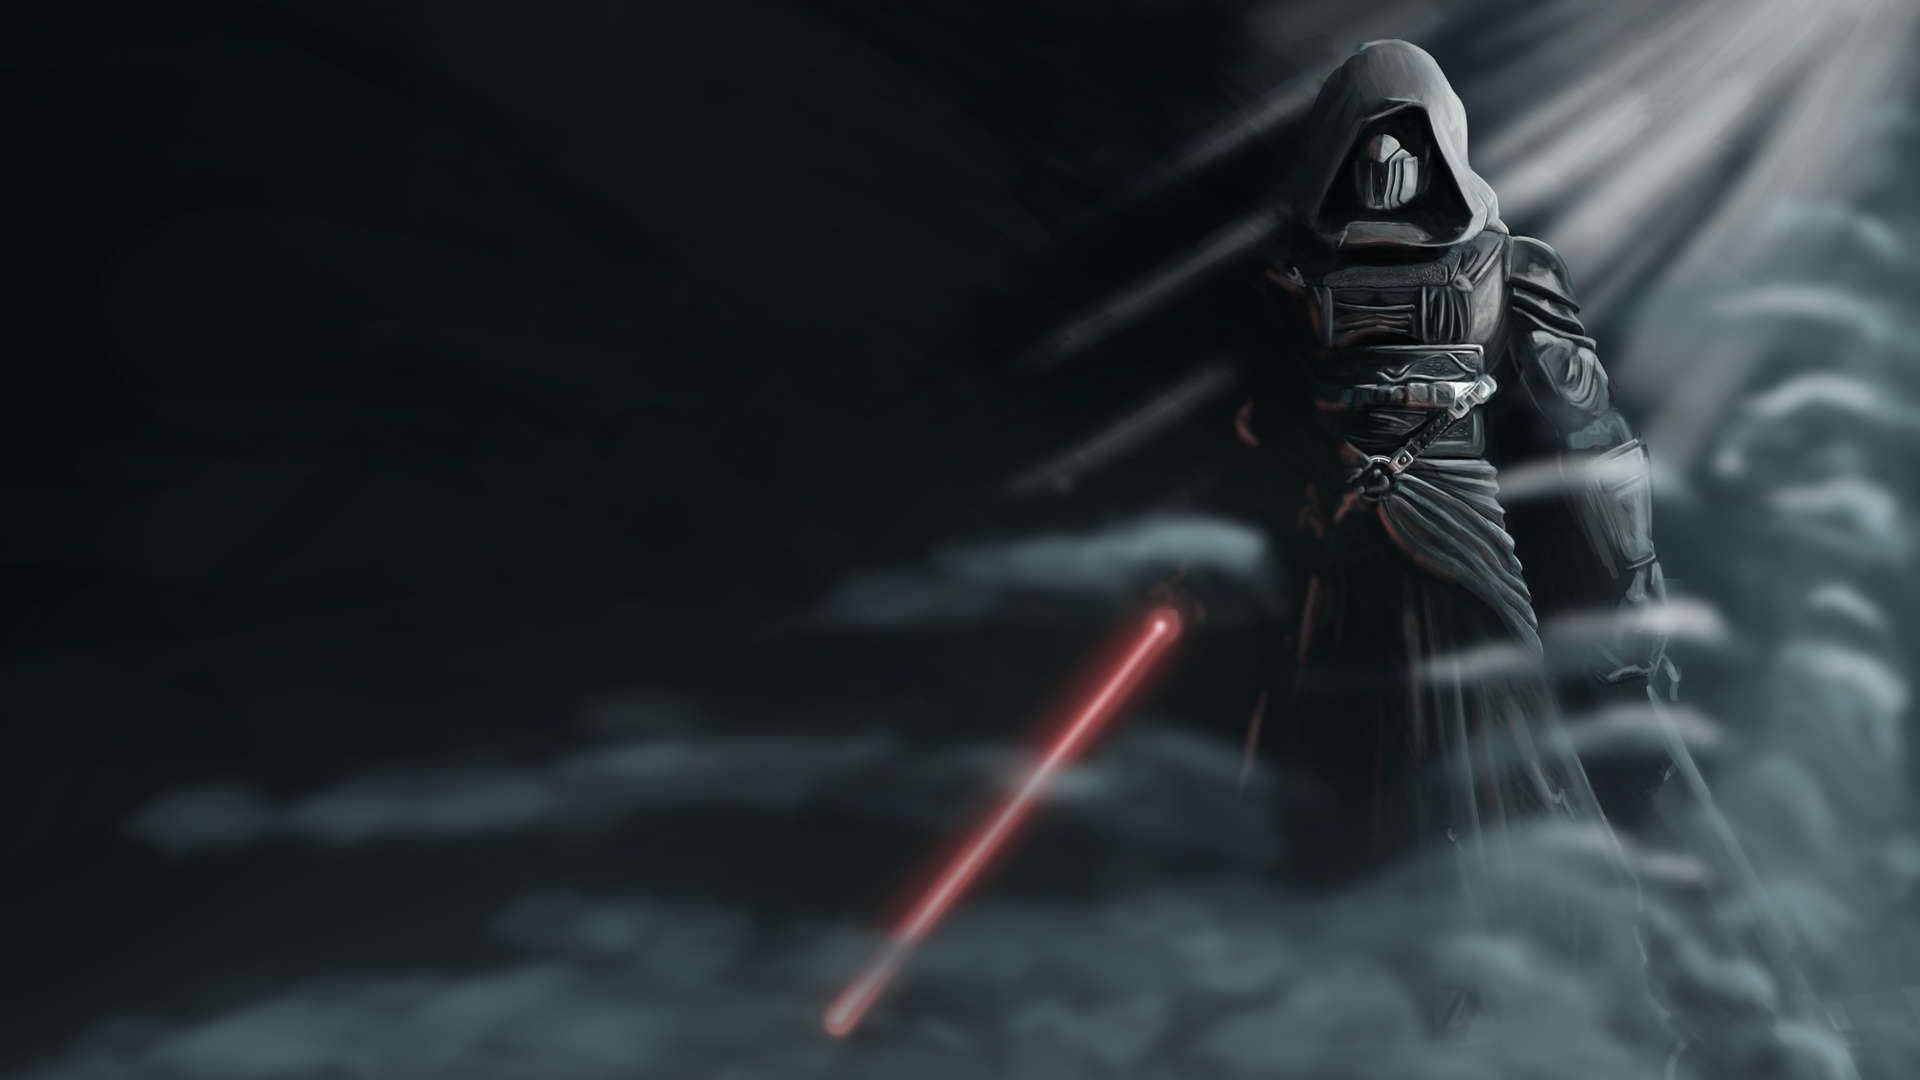 Sith Wallpapers High Resolution Desktop Wallpaper Box